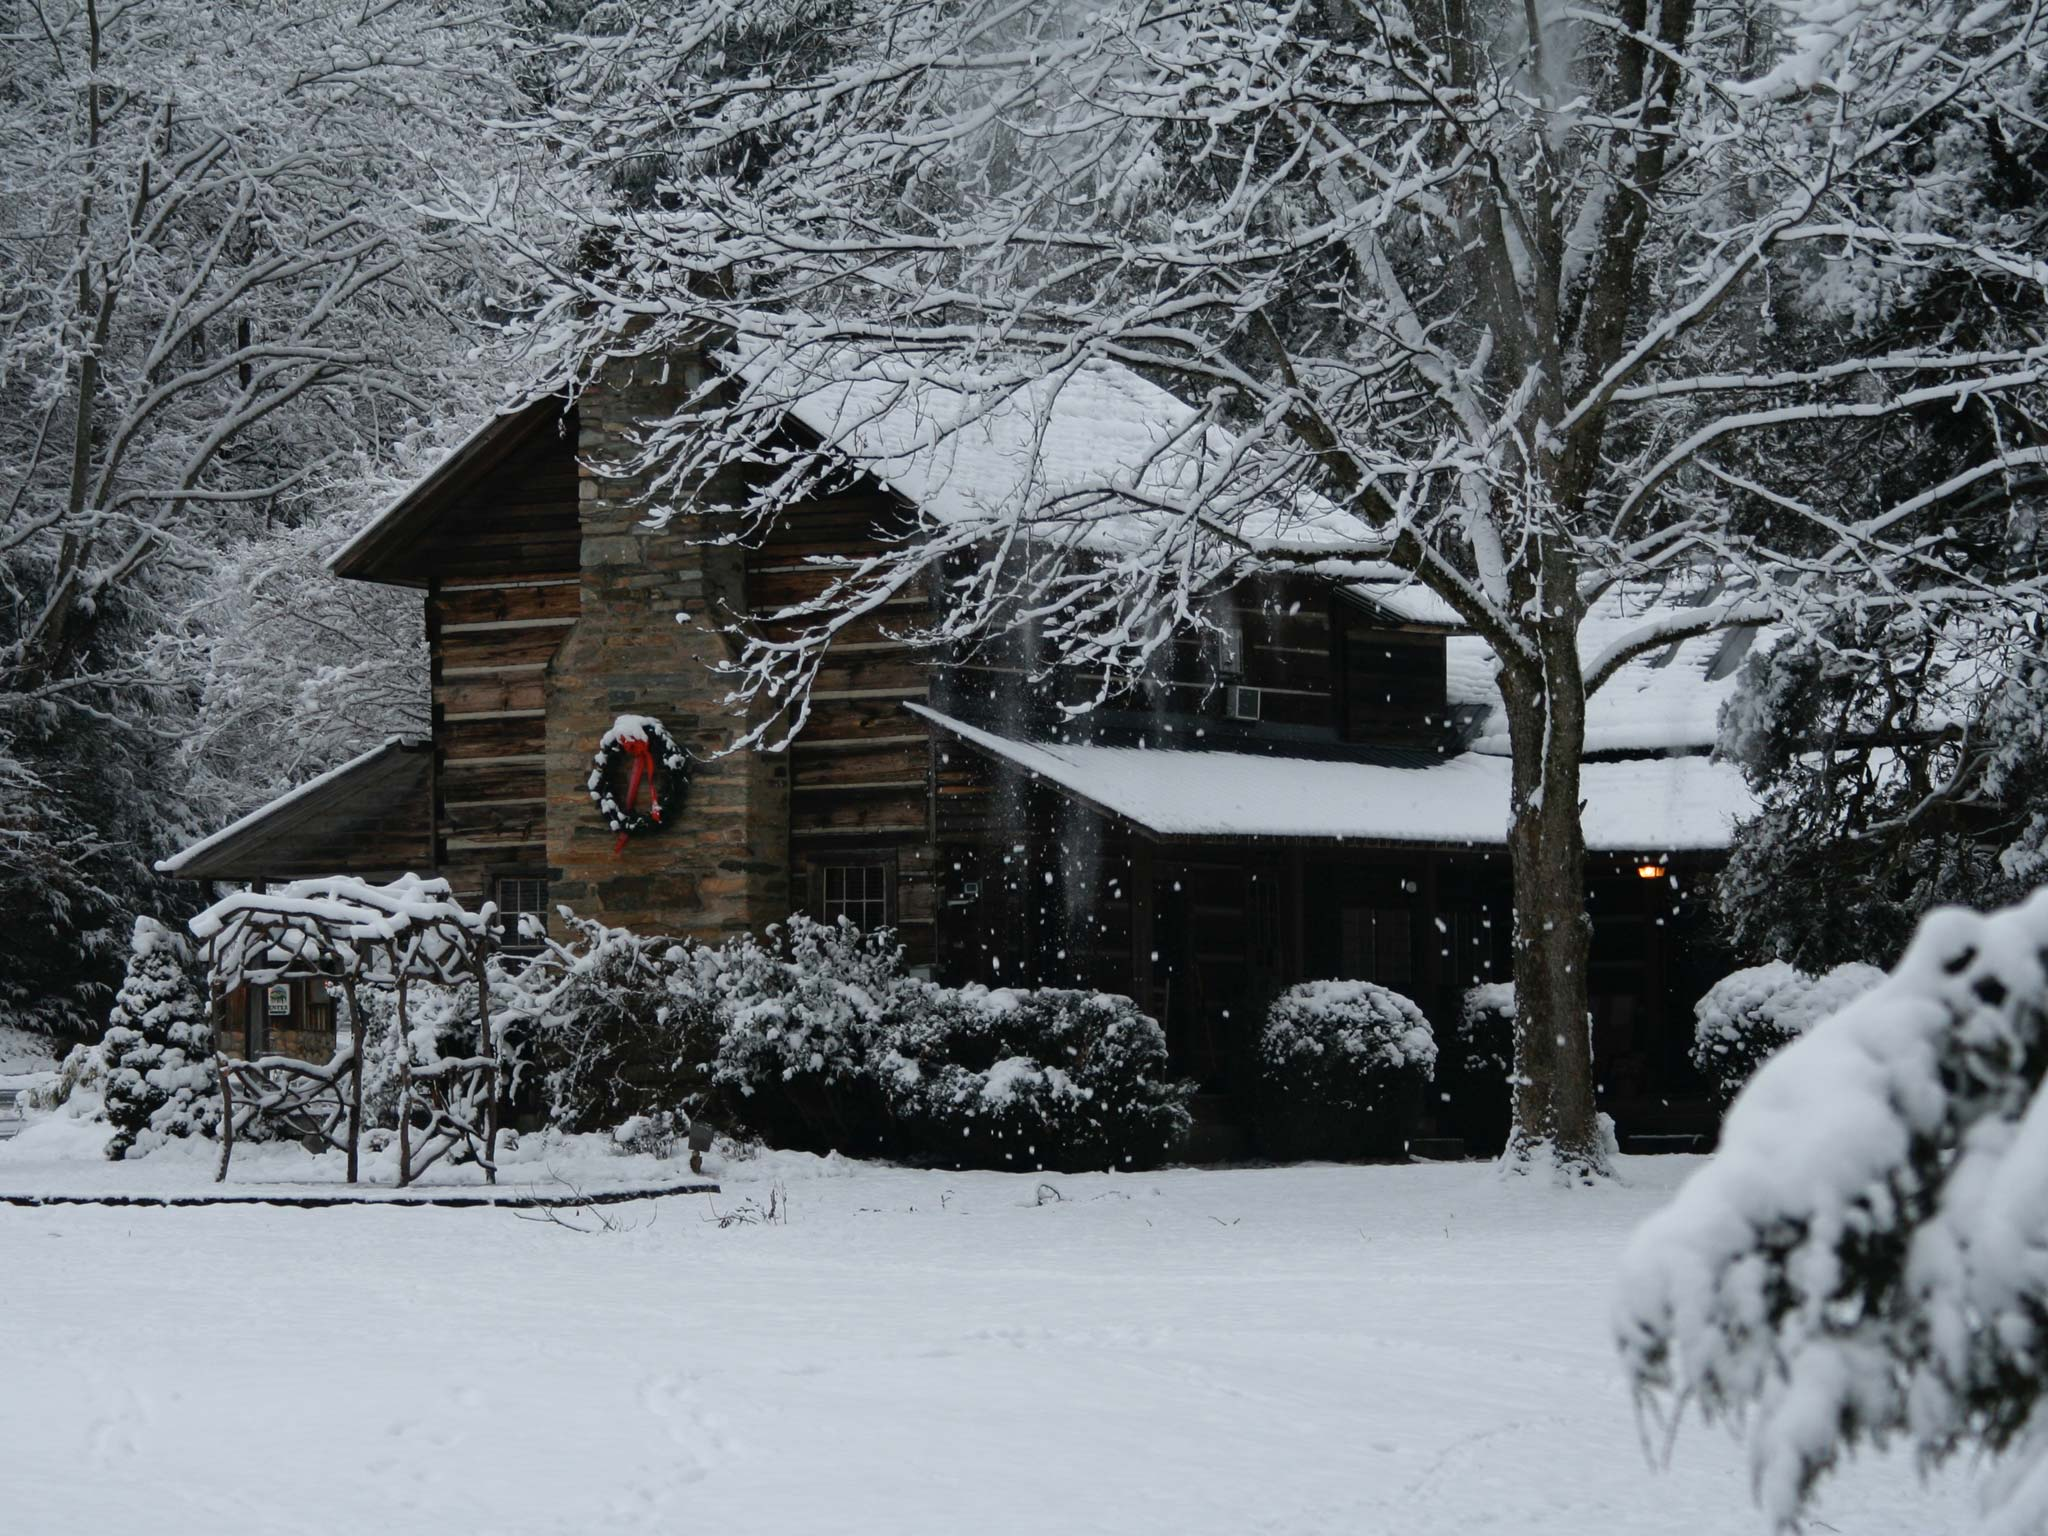 Leatherwood Mountains Resort is open 12 months a year